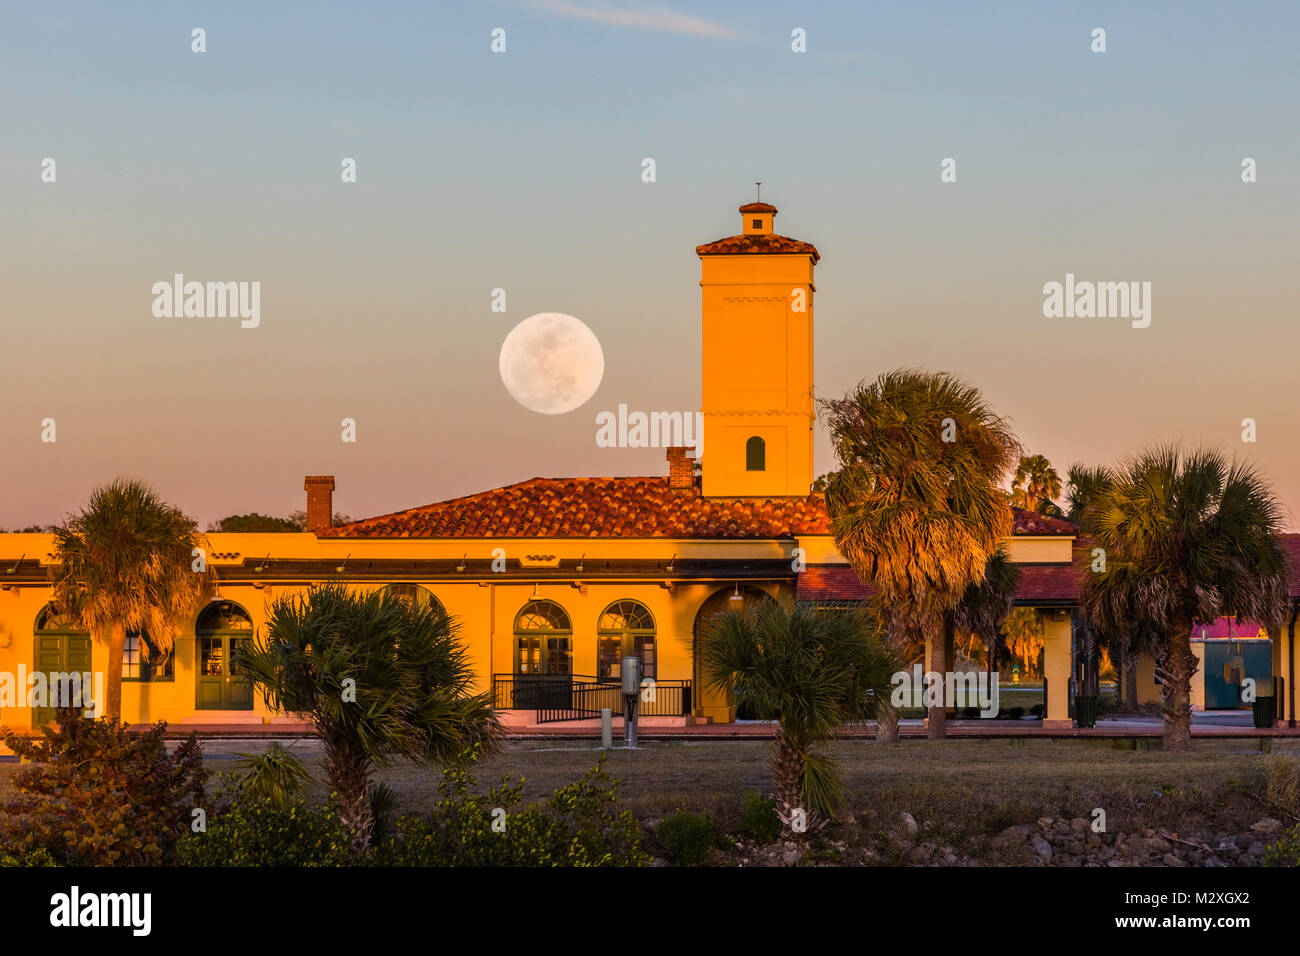 Moon coming up over historic Venice Seaboard Air Line Railway Station also known as the Venice Train Depot in Venice - Stock Image